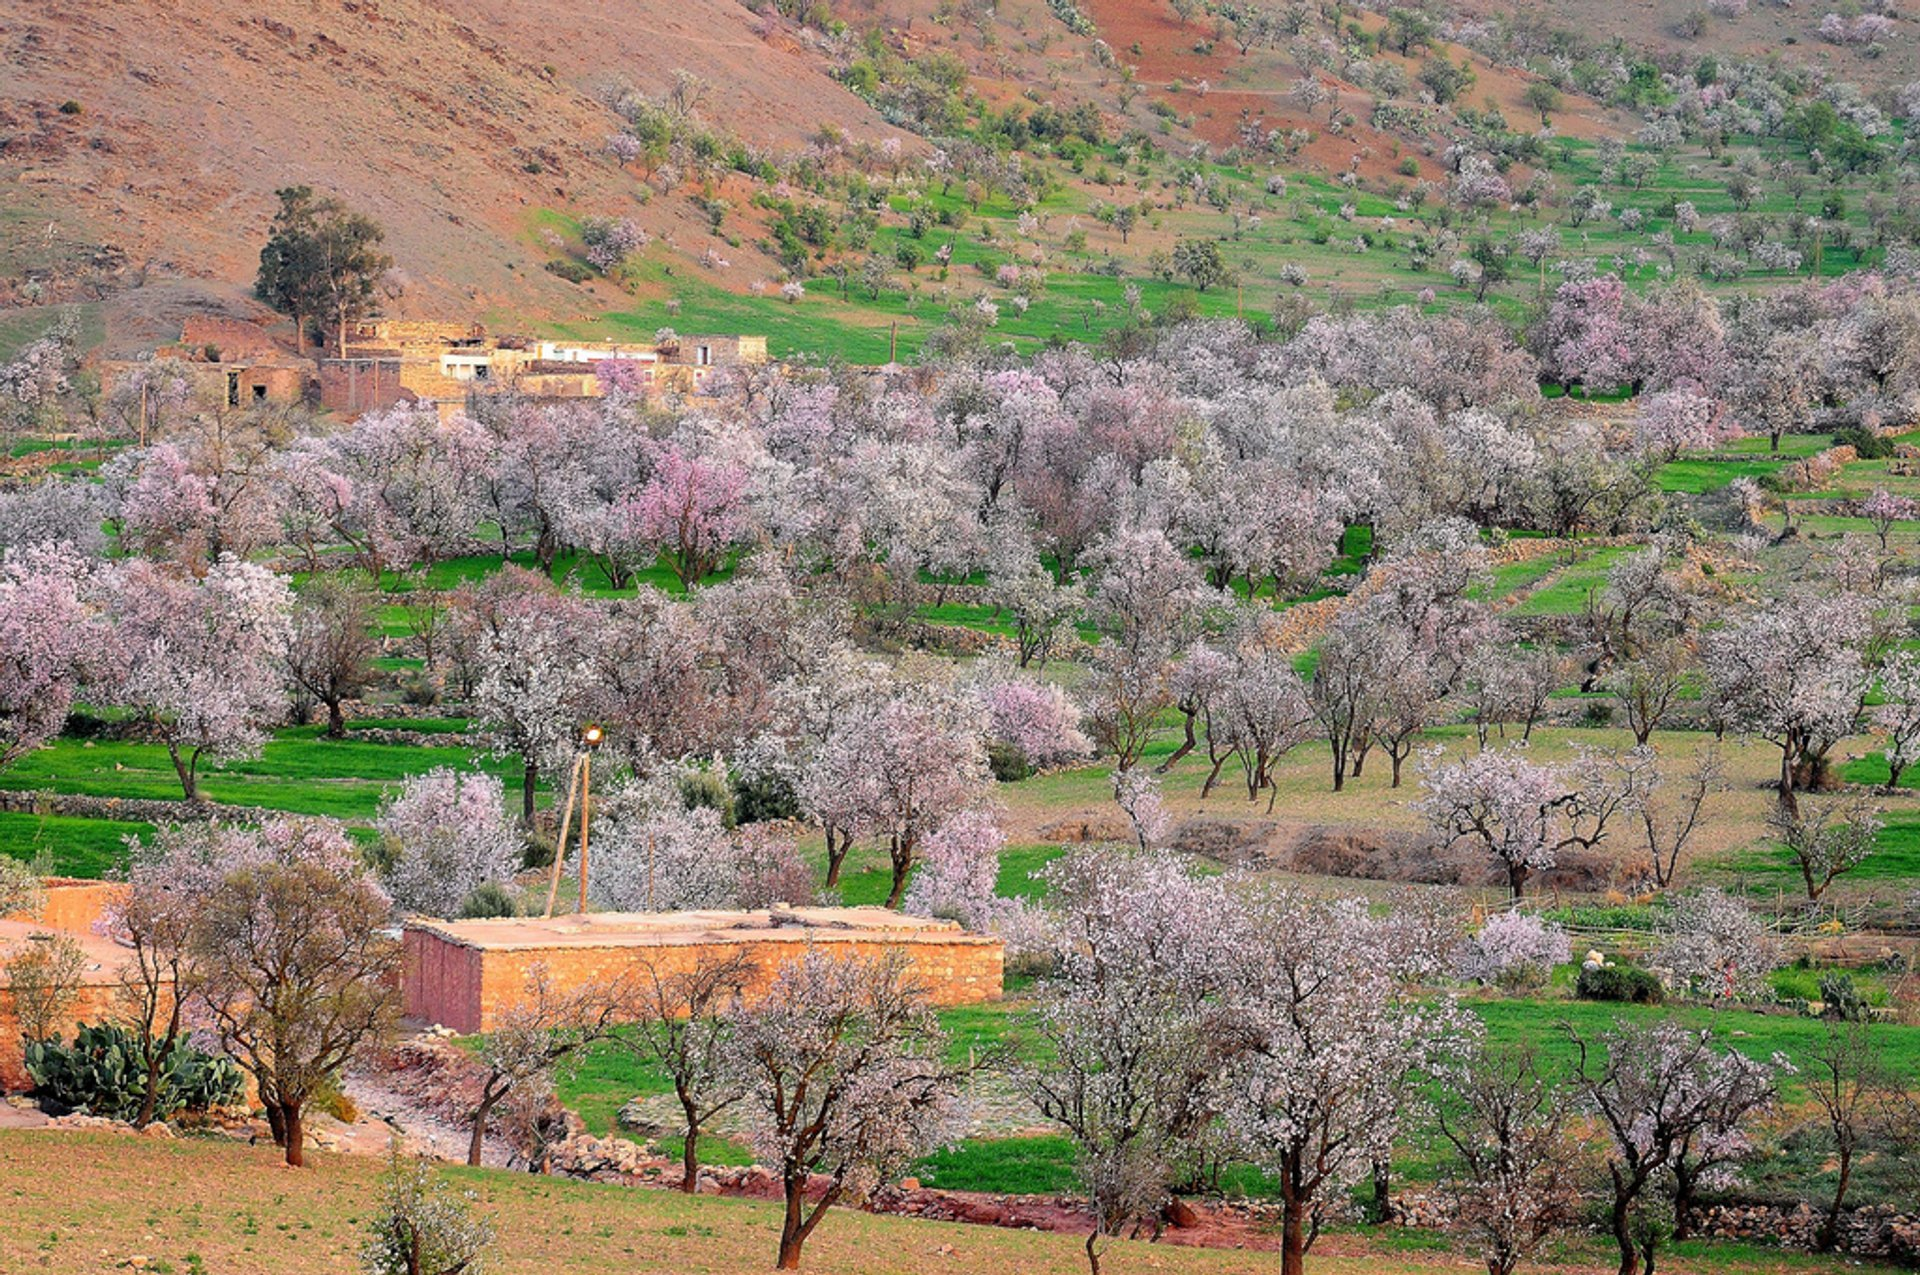 Almond Blossom Season in Morocco 2020 - Best Time